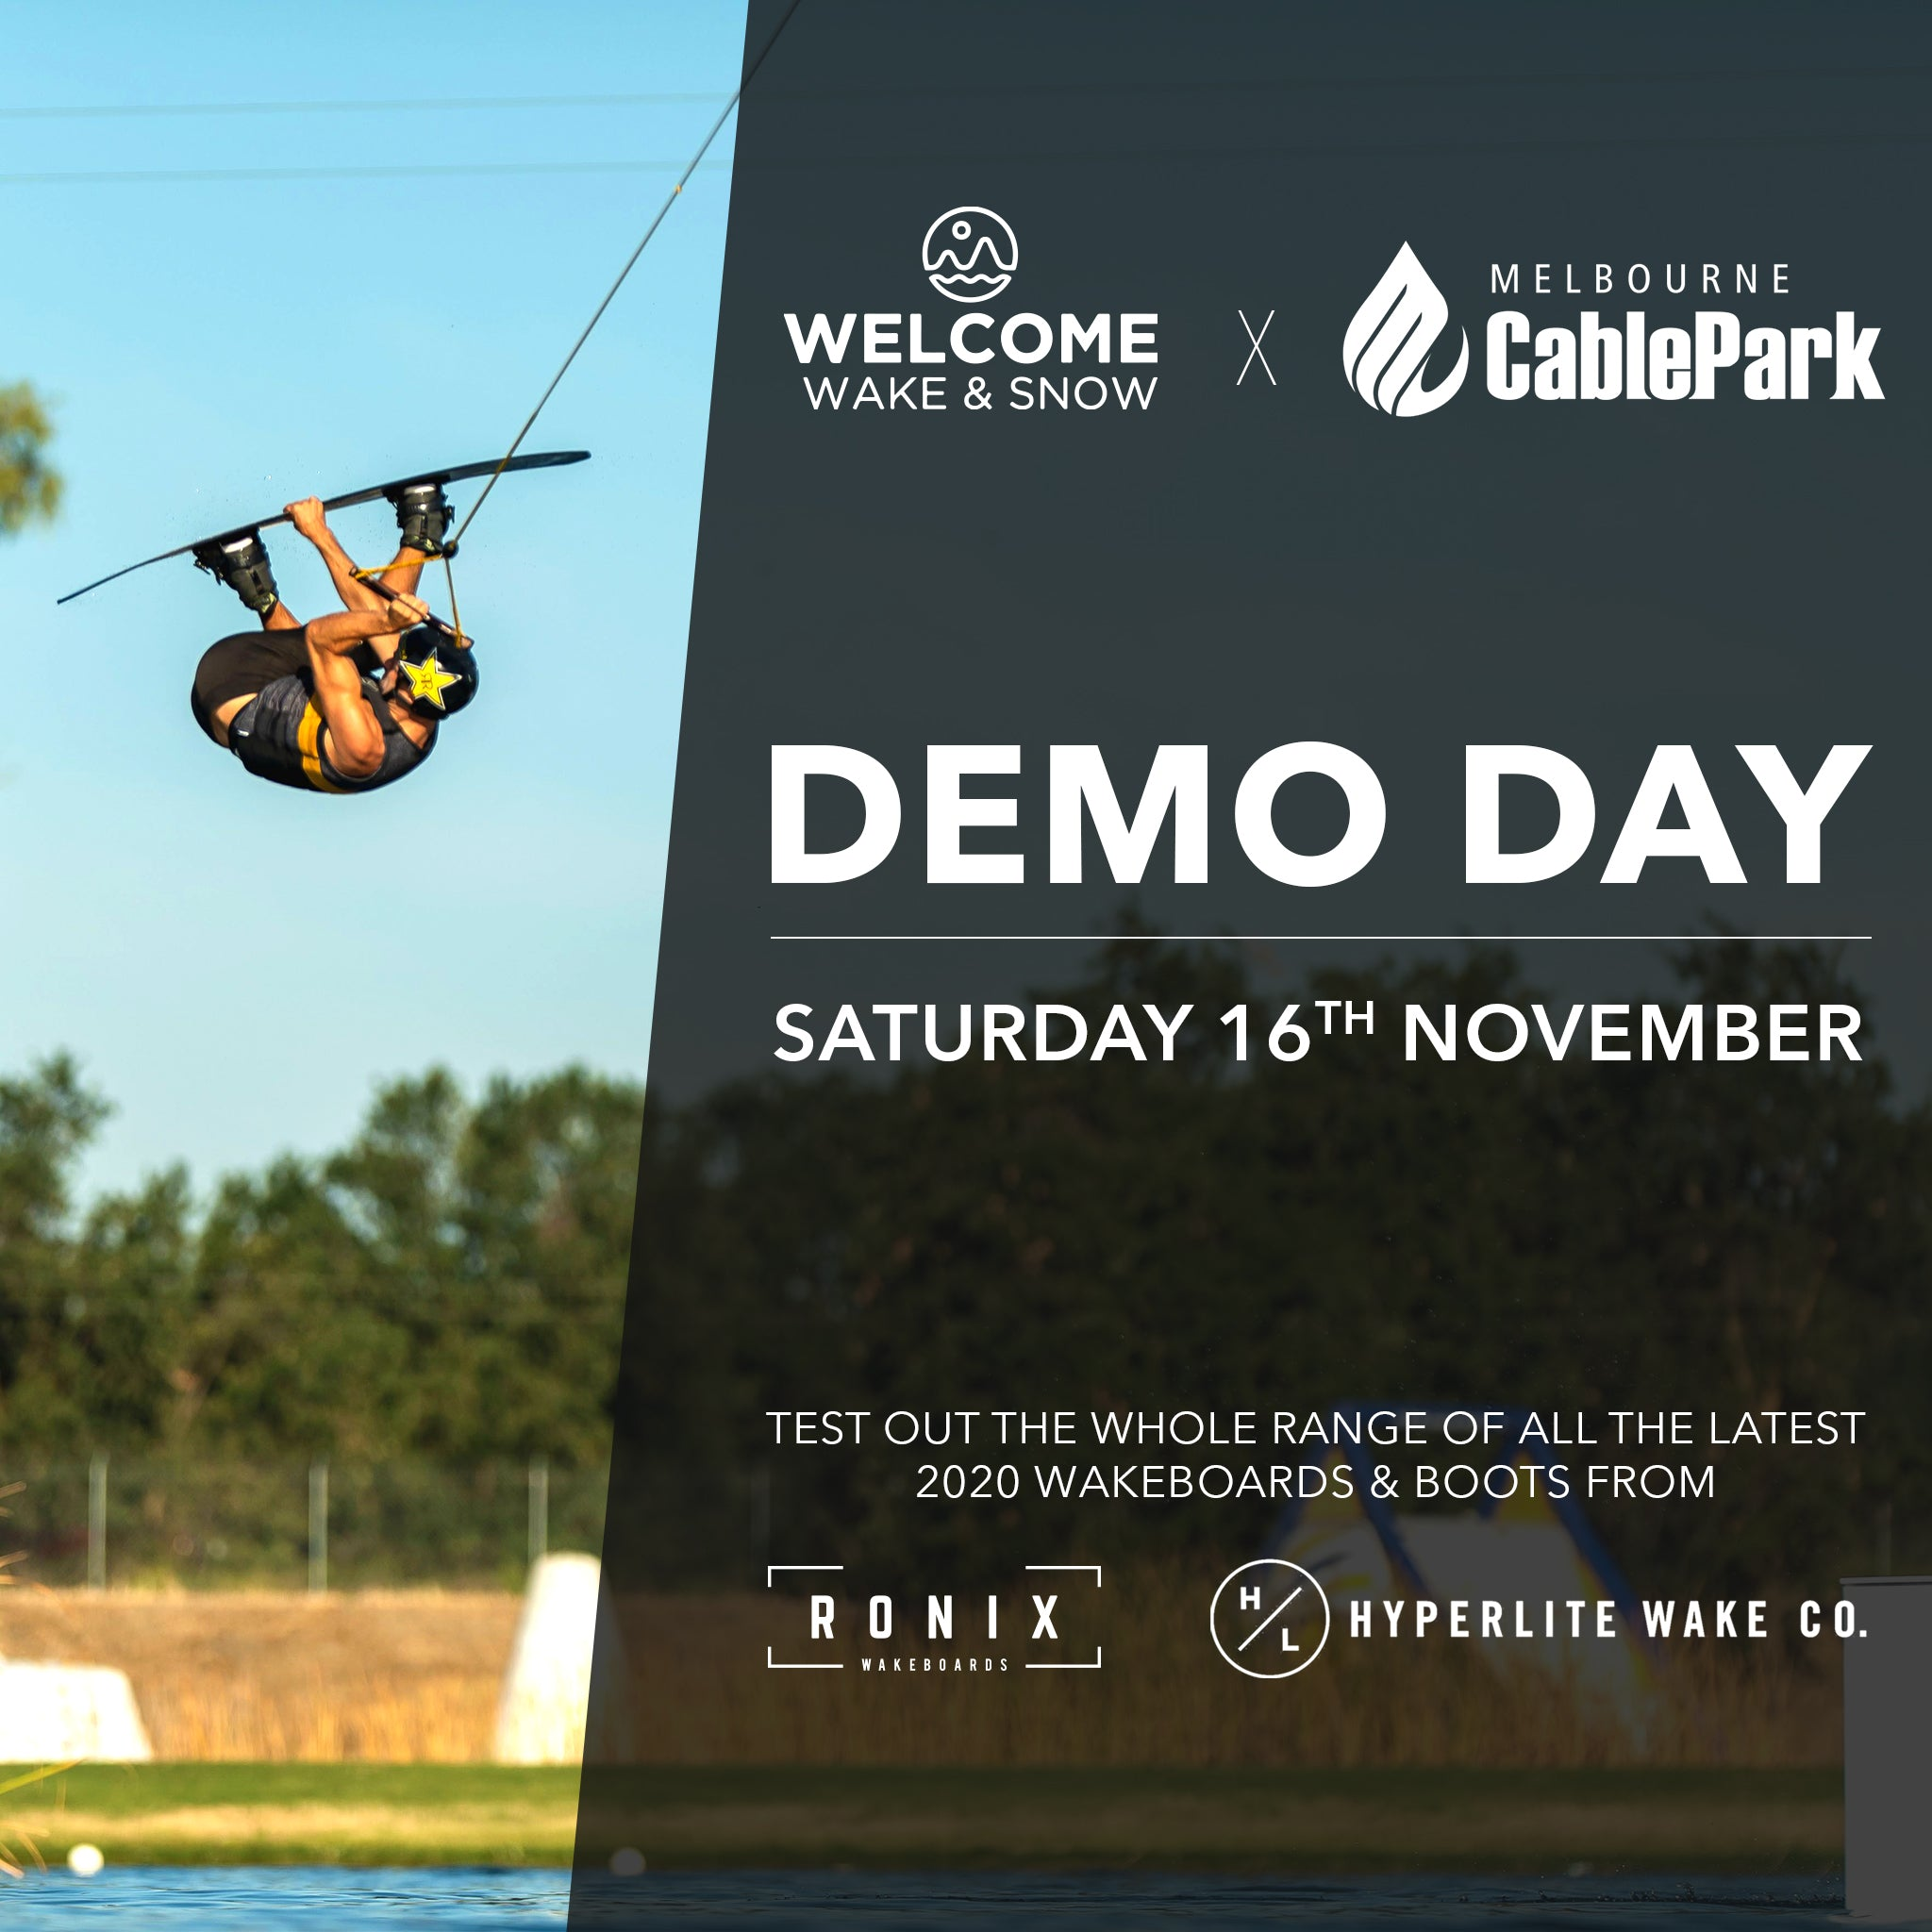 Ronix Hyperlite Demo Day Melbourne Cable Park